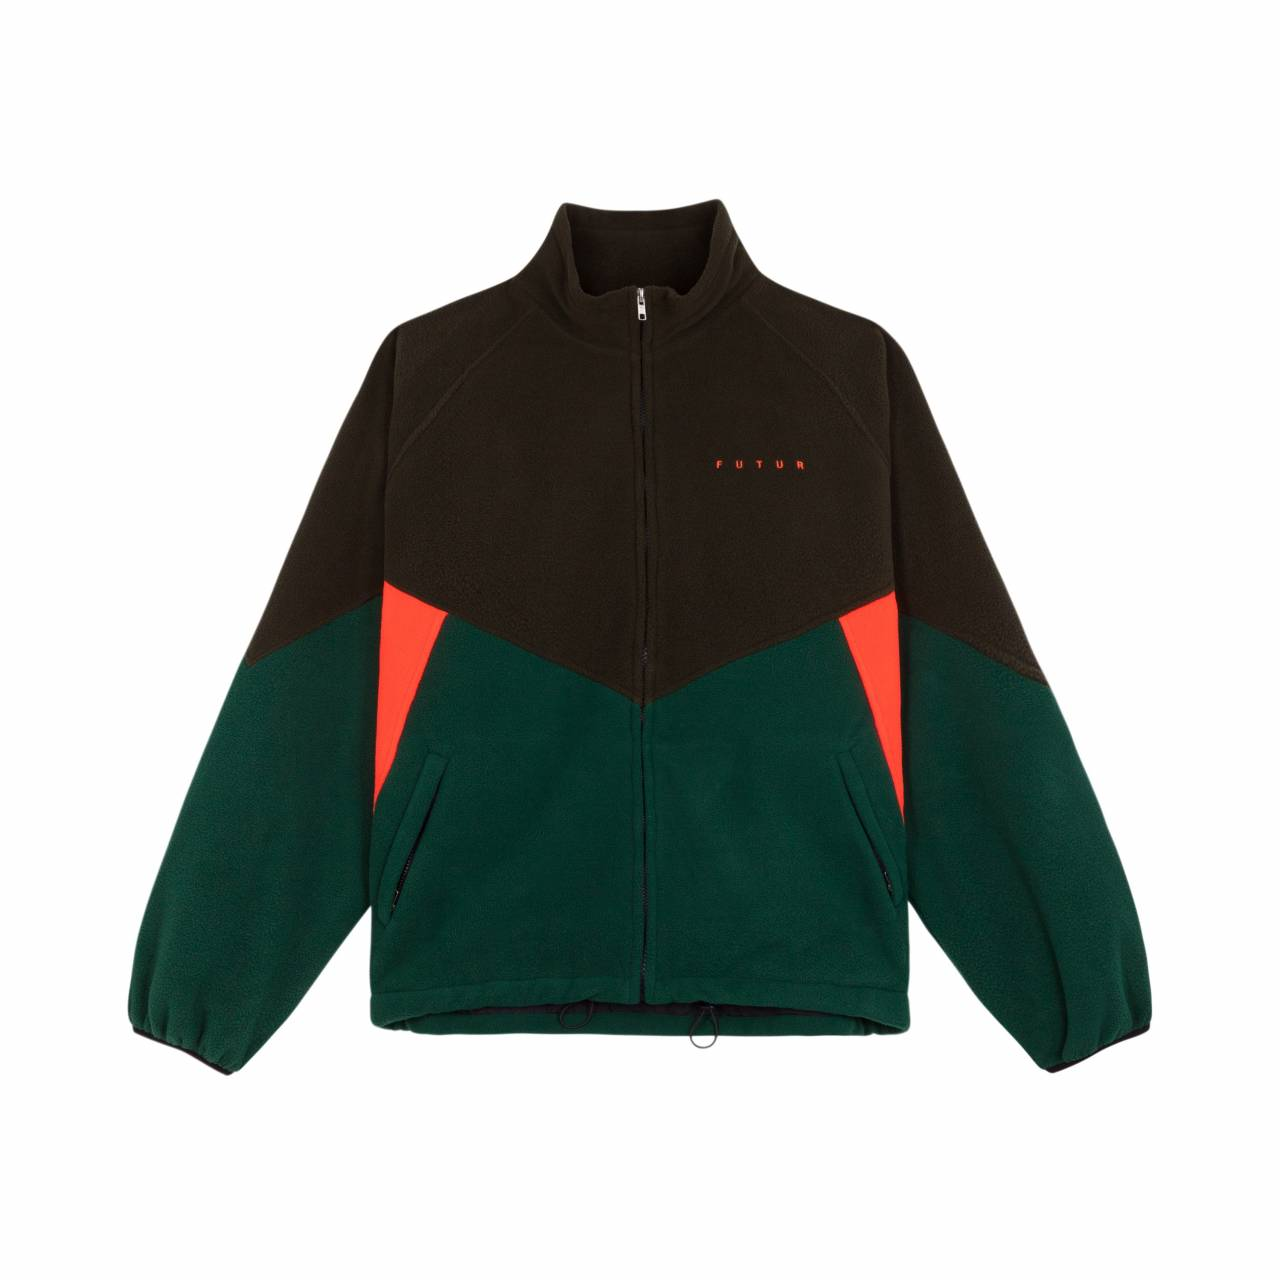 North Jacket-Forest Green-FRONT.jpg